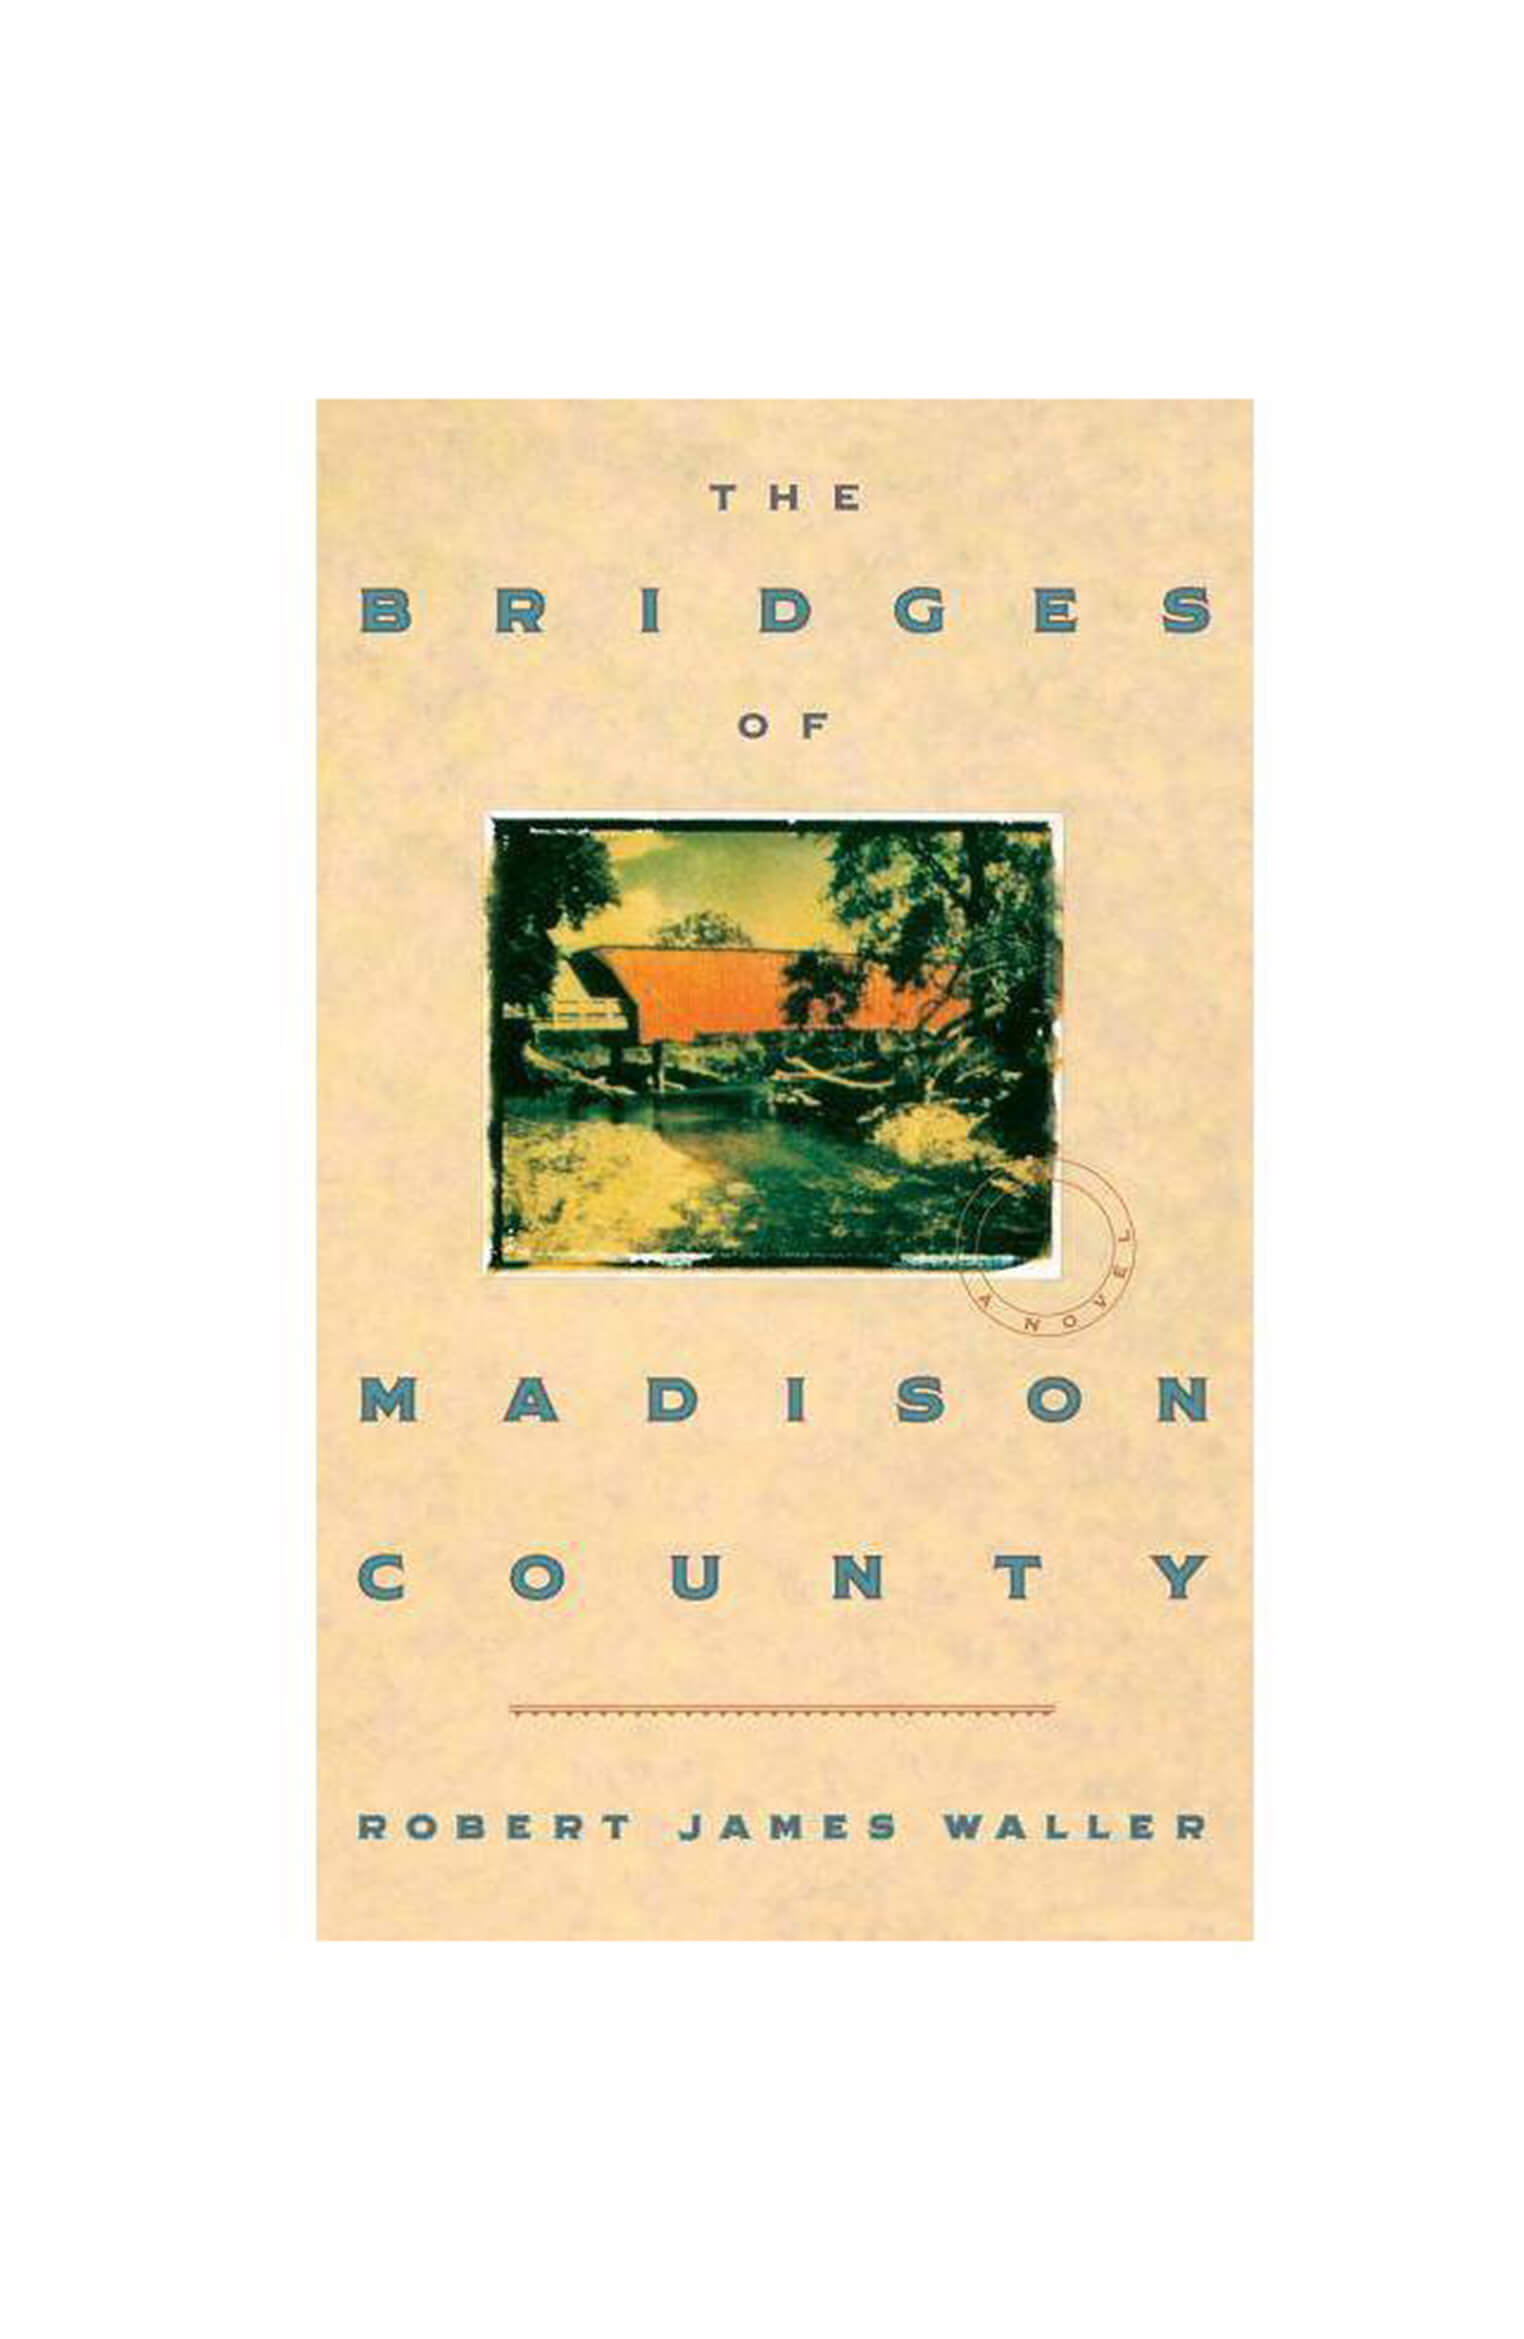 The Bridges of Madison County Novel by Robert James Waller